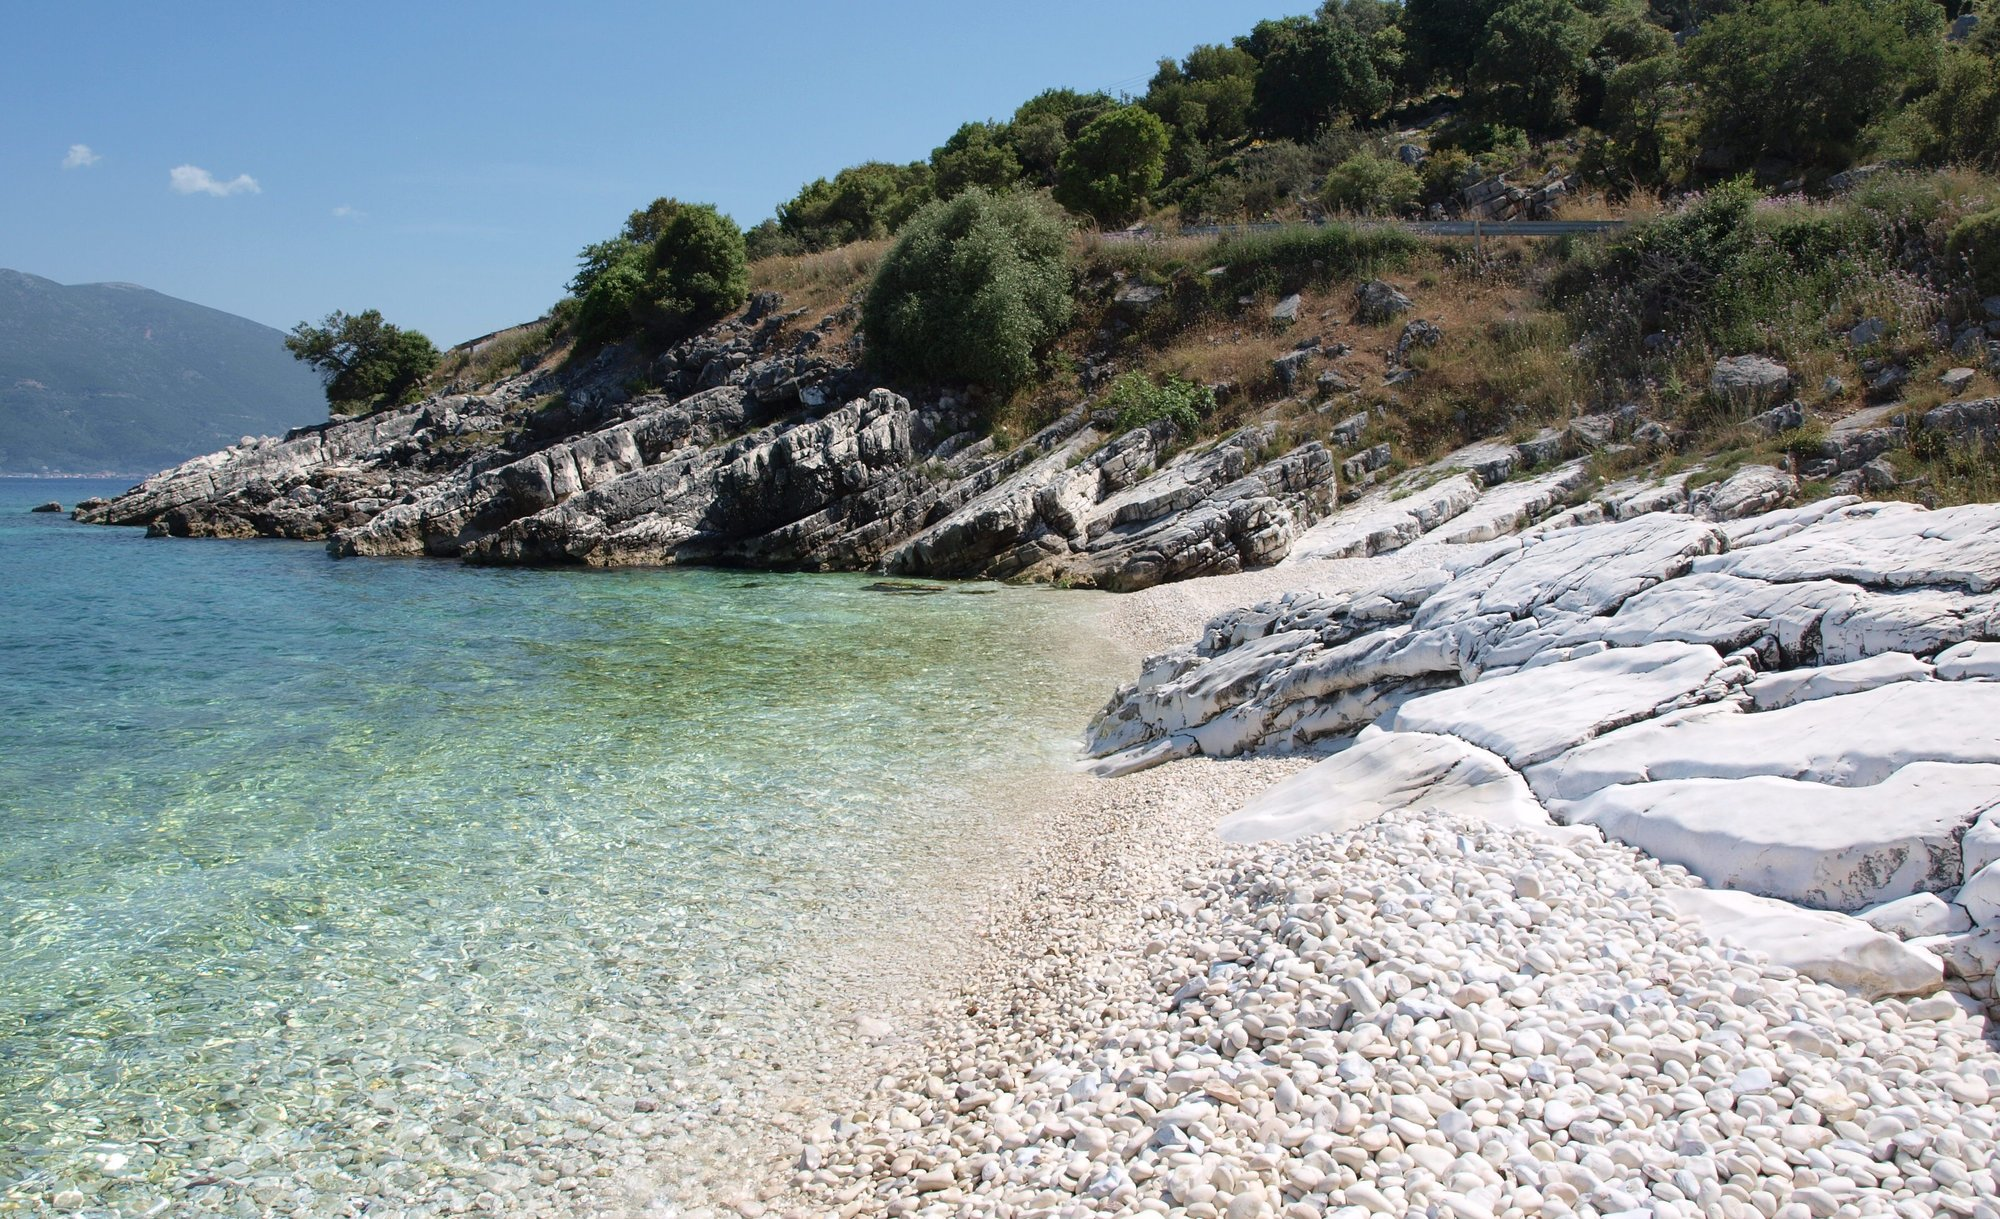 A beach close to Gaios